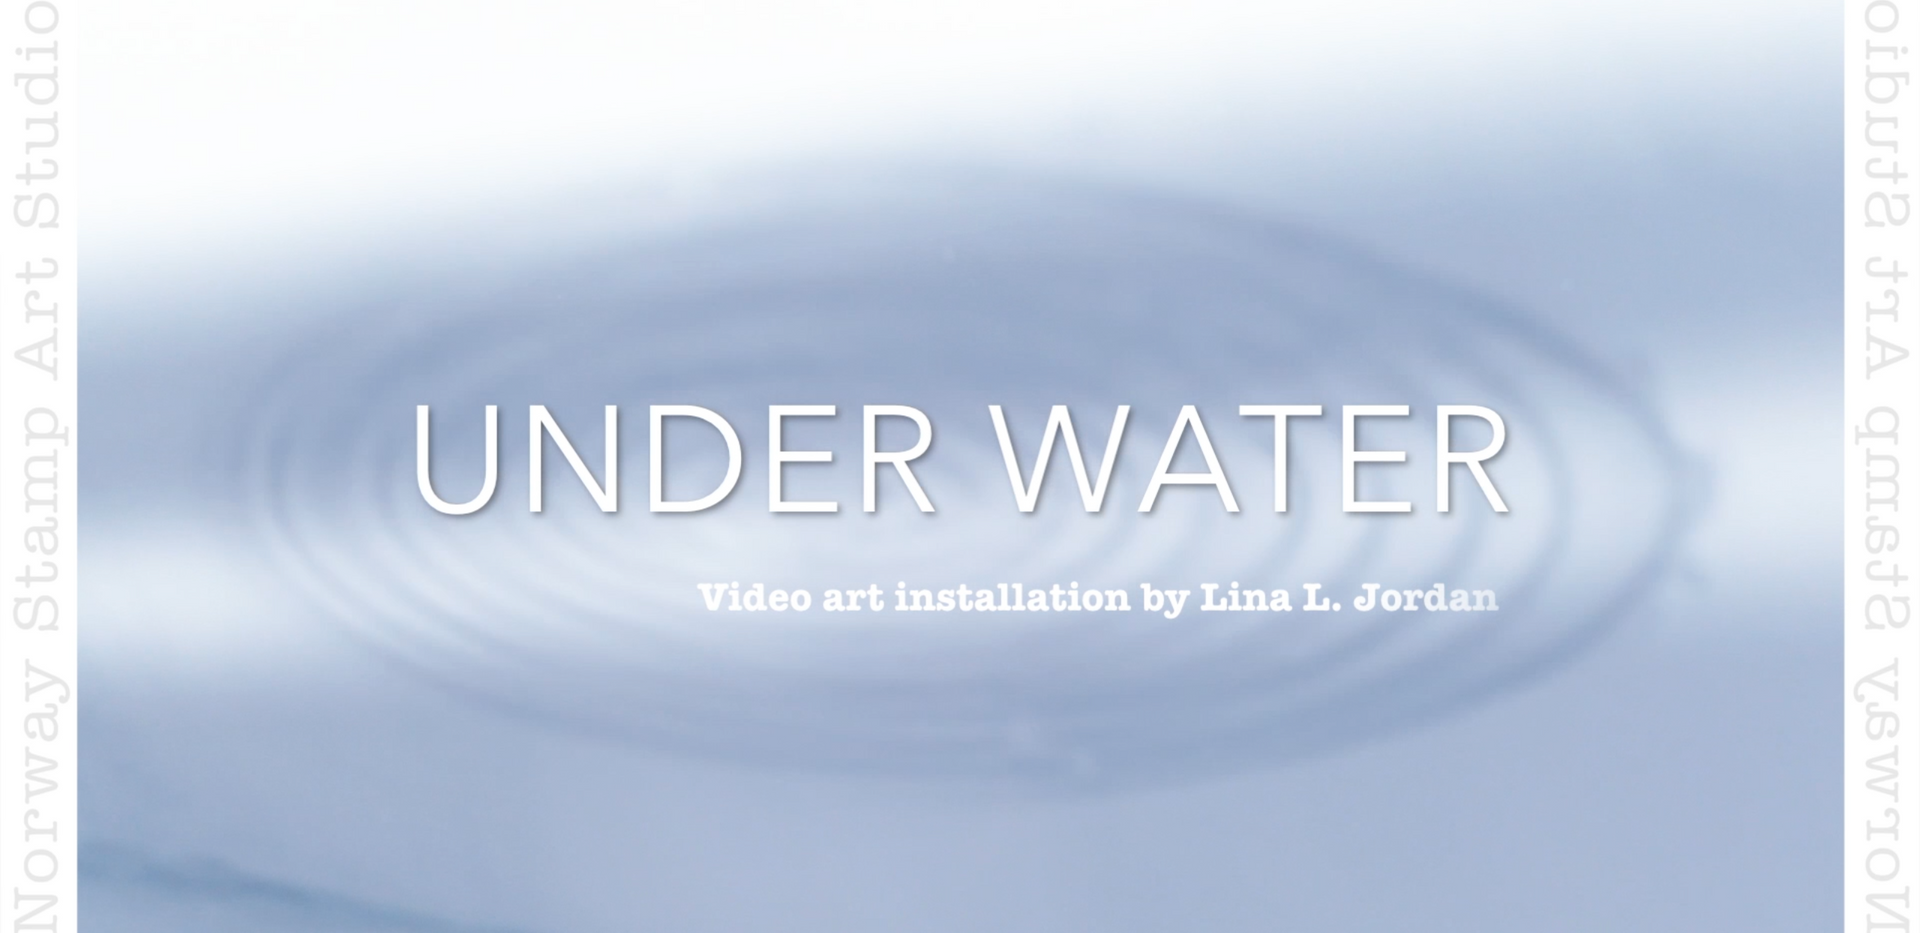 Under water-0.png